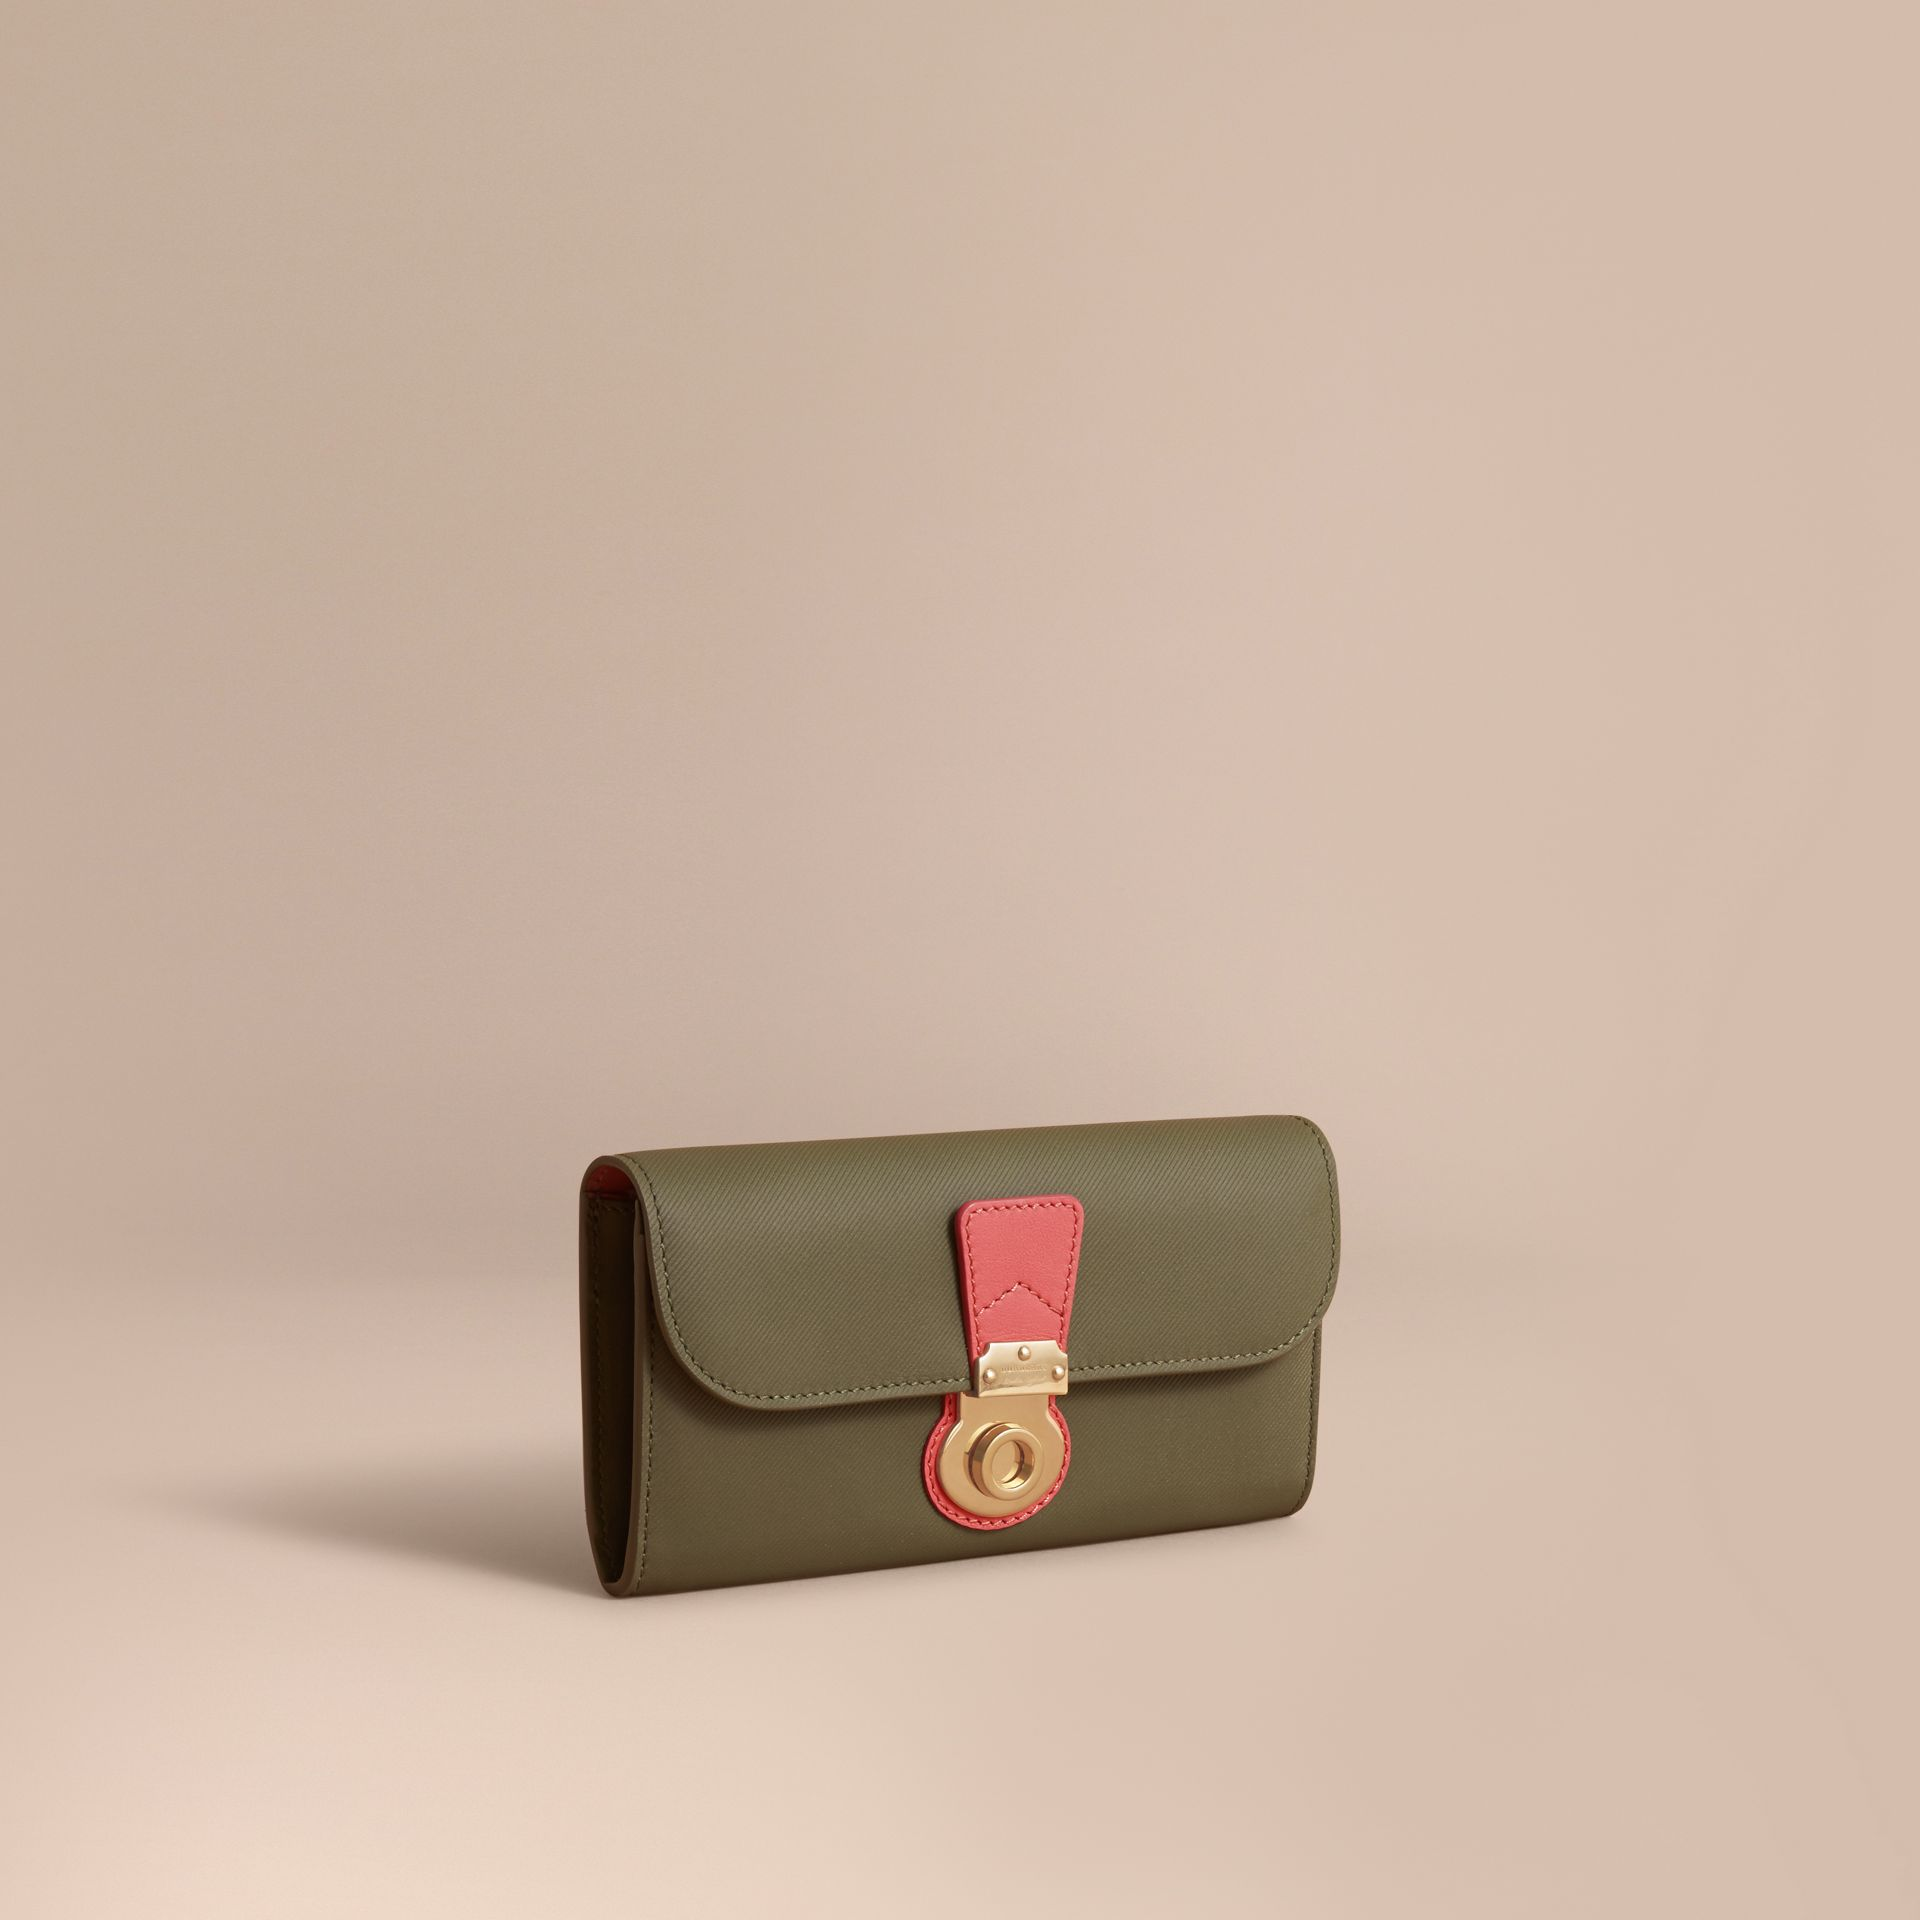 Portefeuille continental en cuir trench bicolore (Vert Mousse/rose Blossom) - Femme | Burberry - photo de la galerie 1